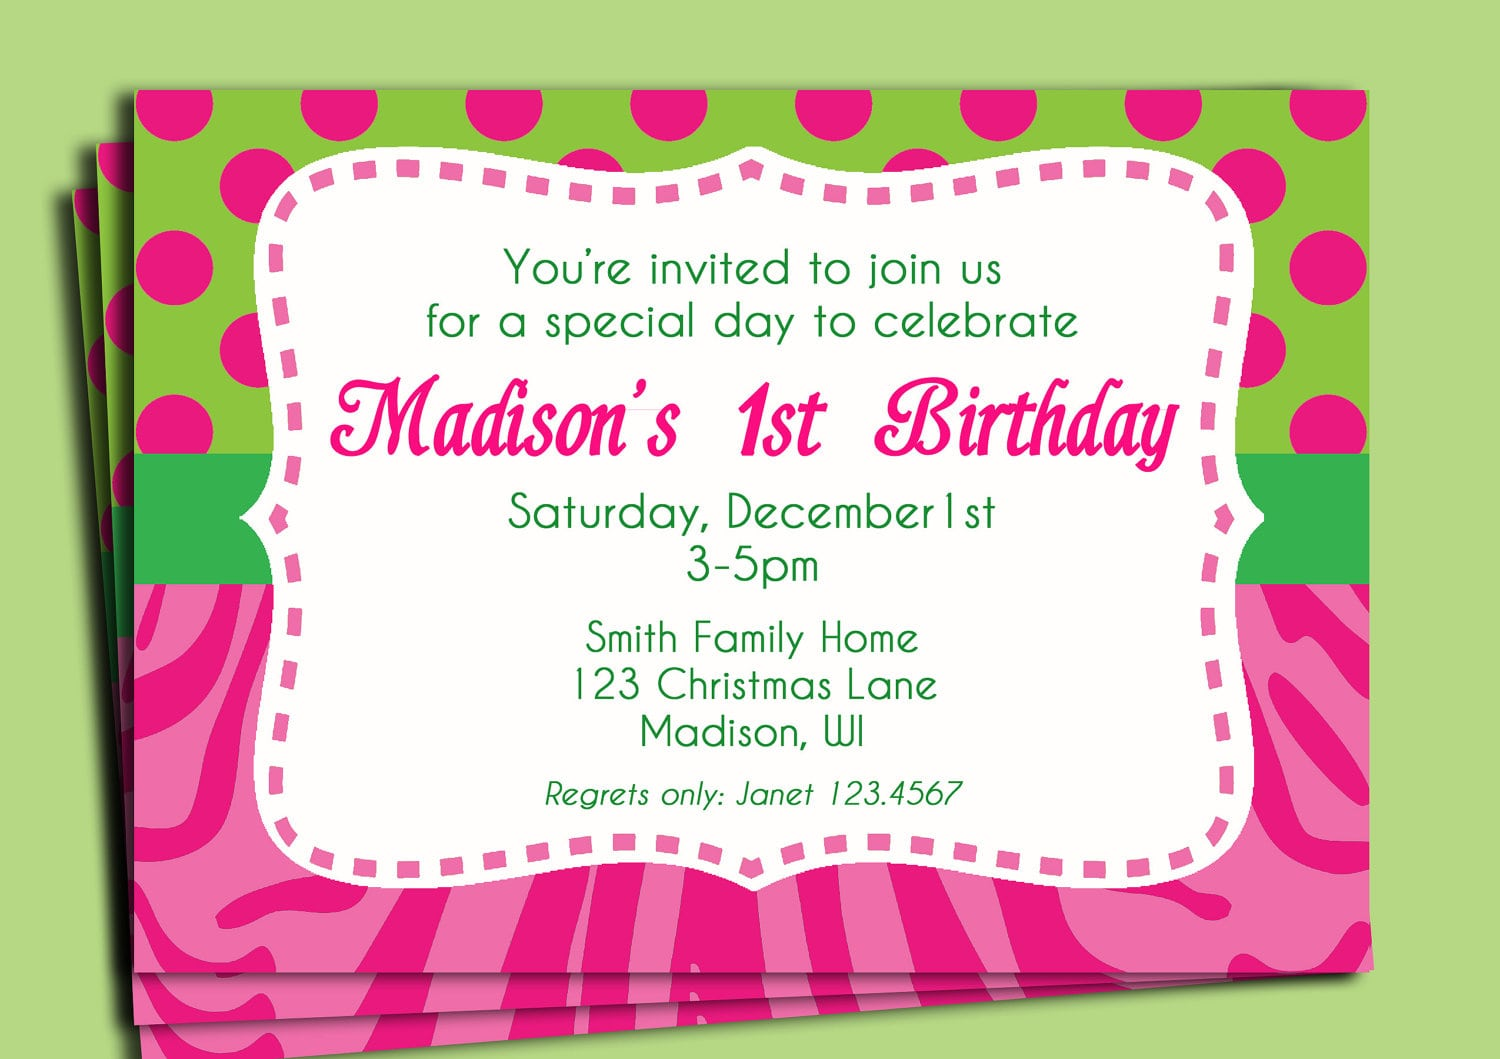 Purse Party Invitations - Mickey Mouse Invitations Templates